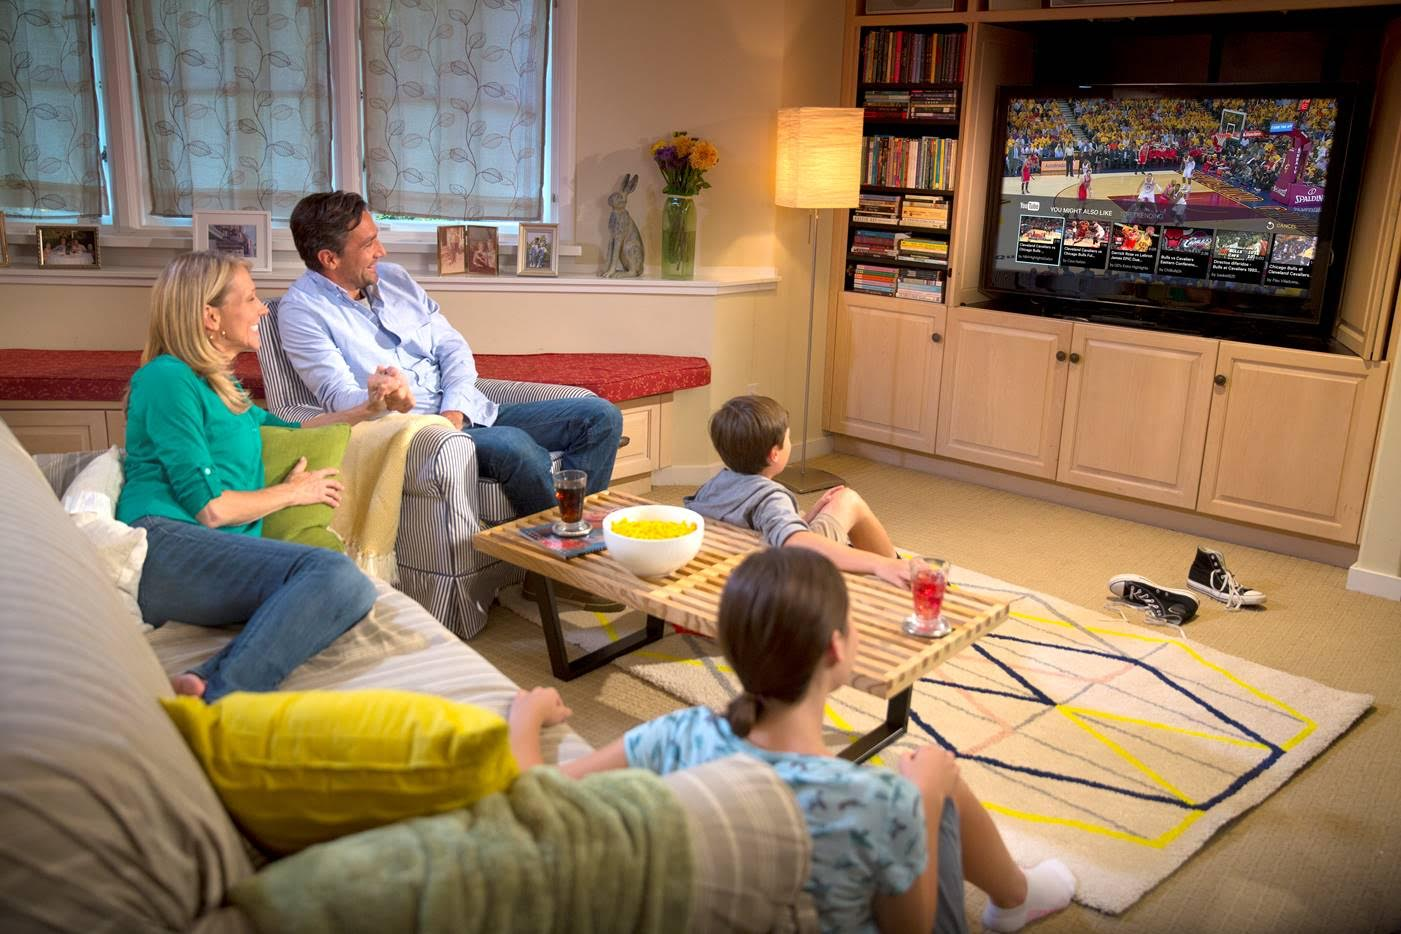 Sponsored Message: Slingbox lets you watch all your sports, movies, and other cable channels live, even on the road.